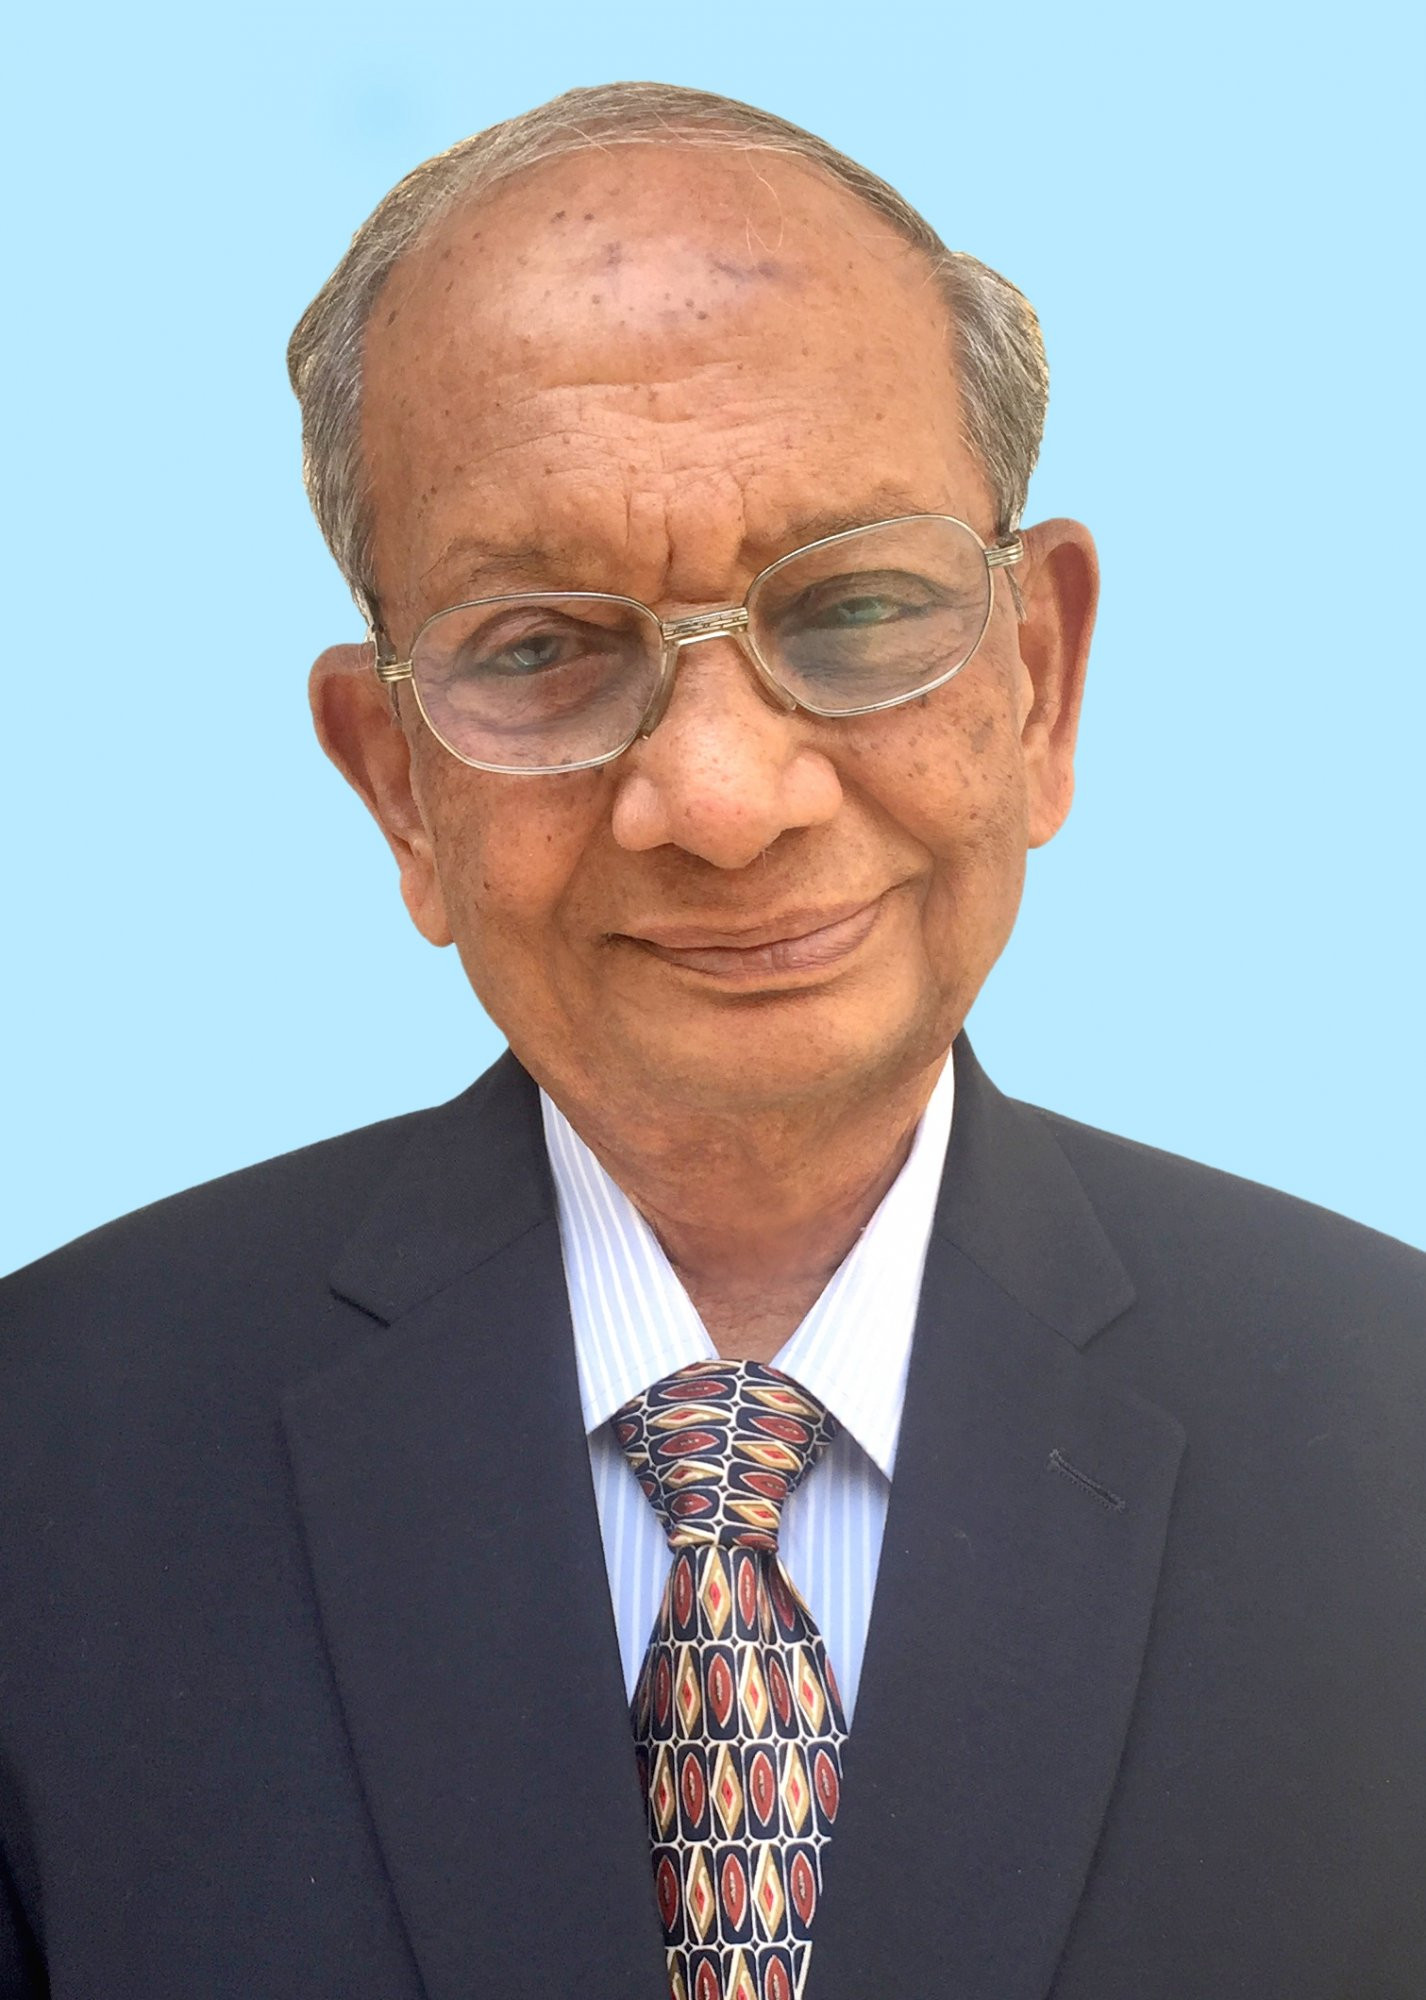 Rattan Lal Mittal Author of Evaluating Organization Development